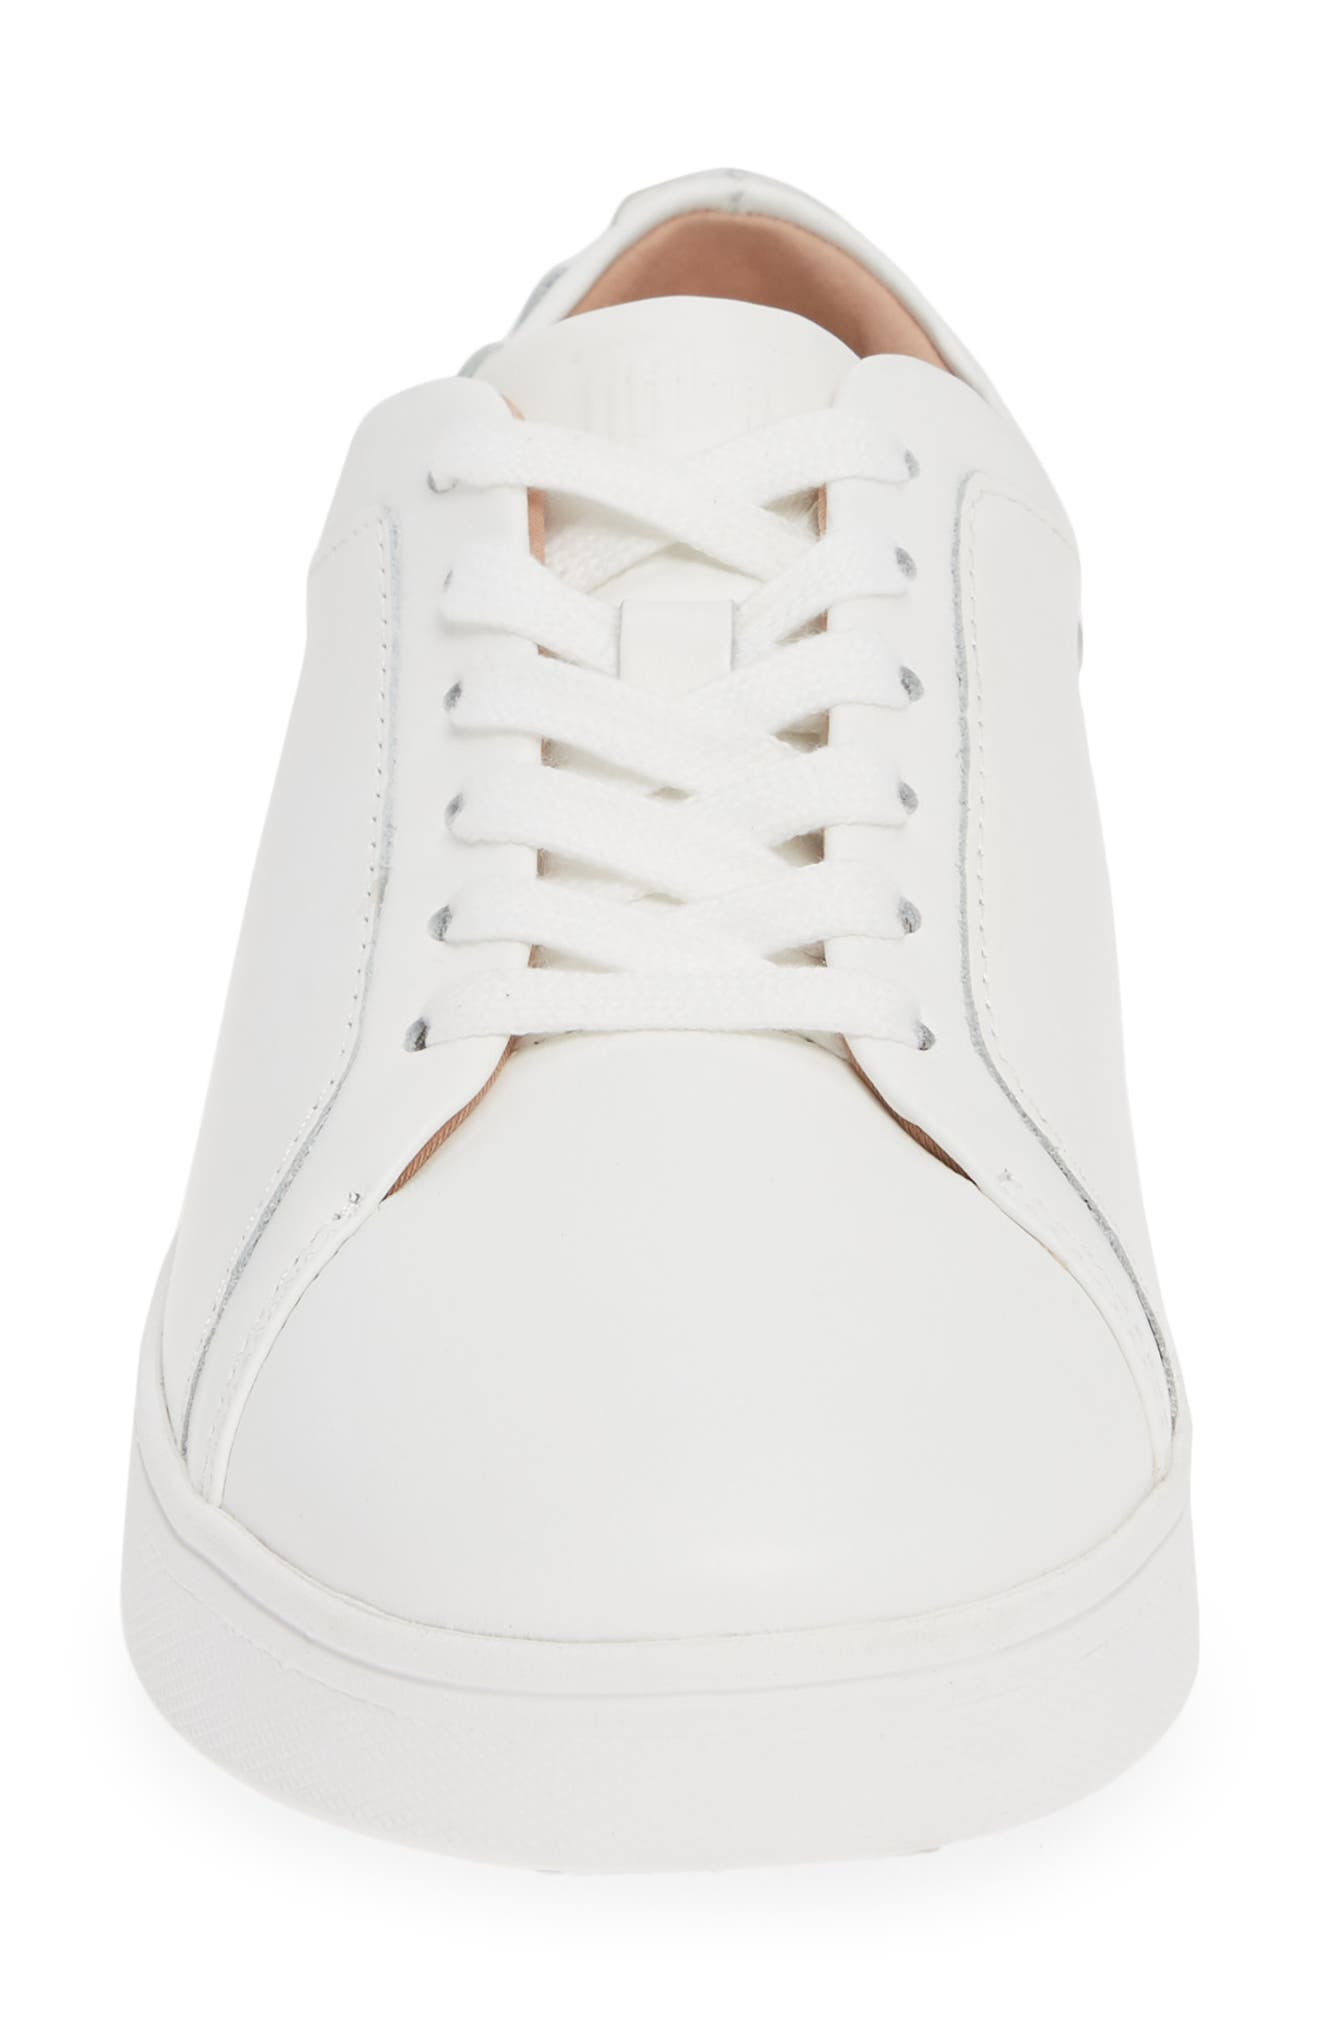 FITFLOP, Rally Studded Sneaker, Alternate thumbnail 4, color, URBAN WHITE LEATHER